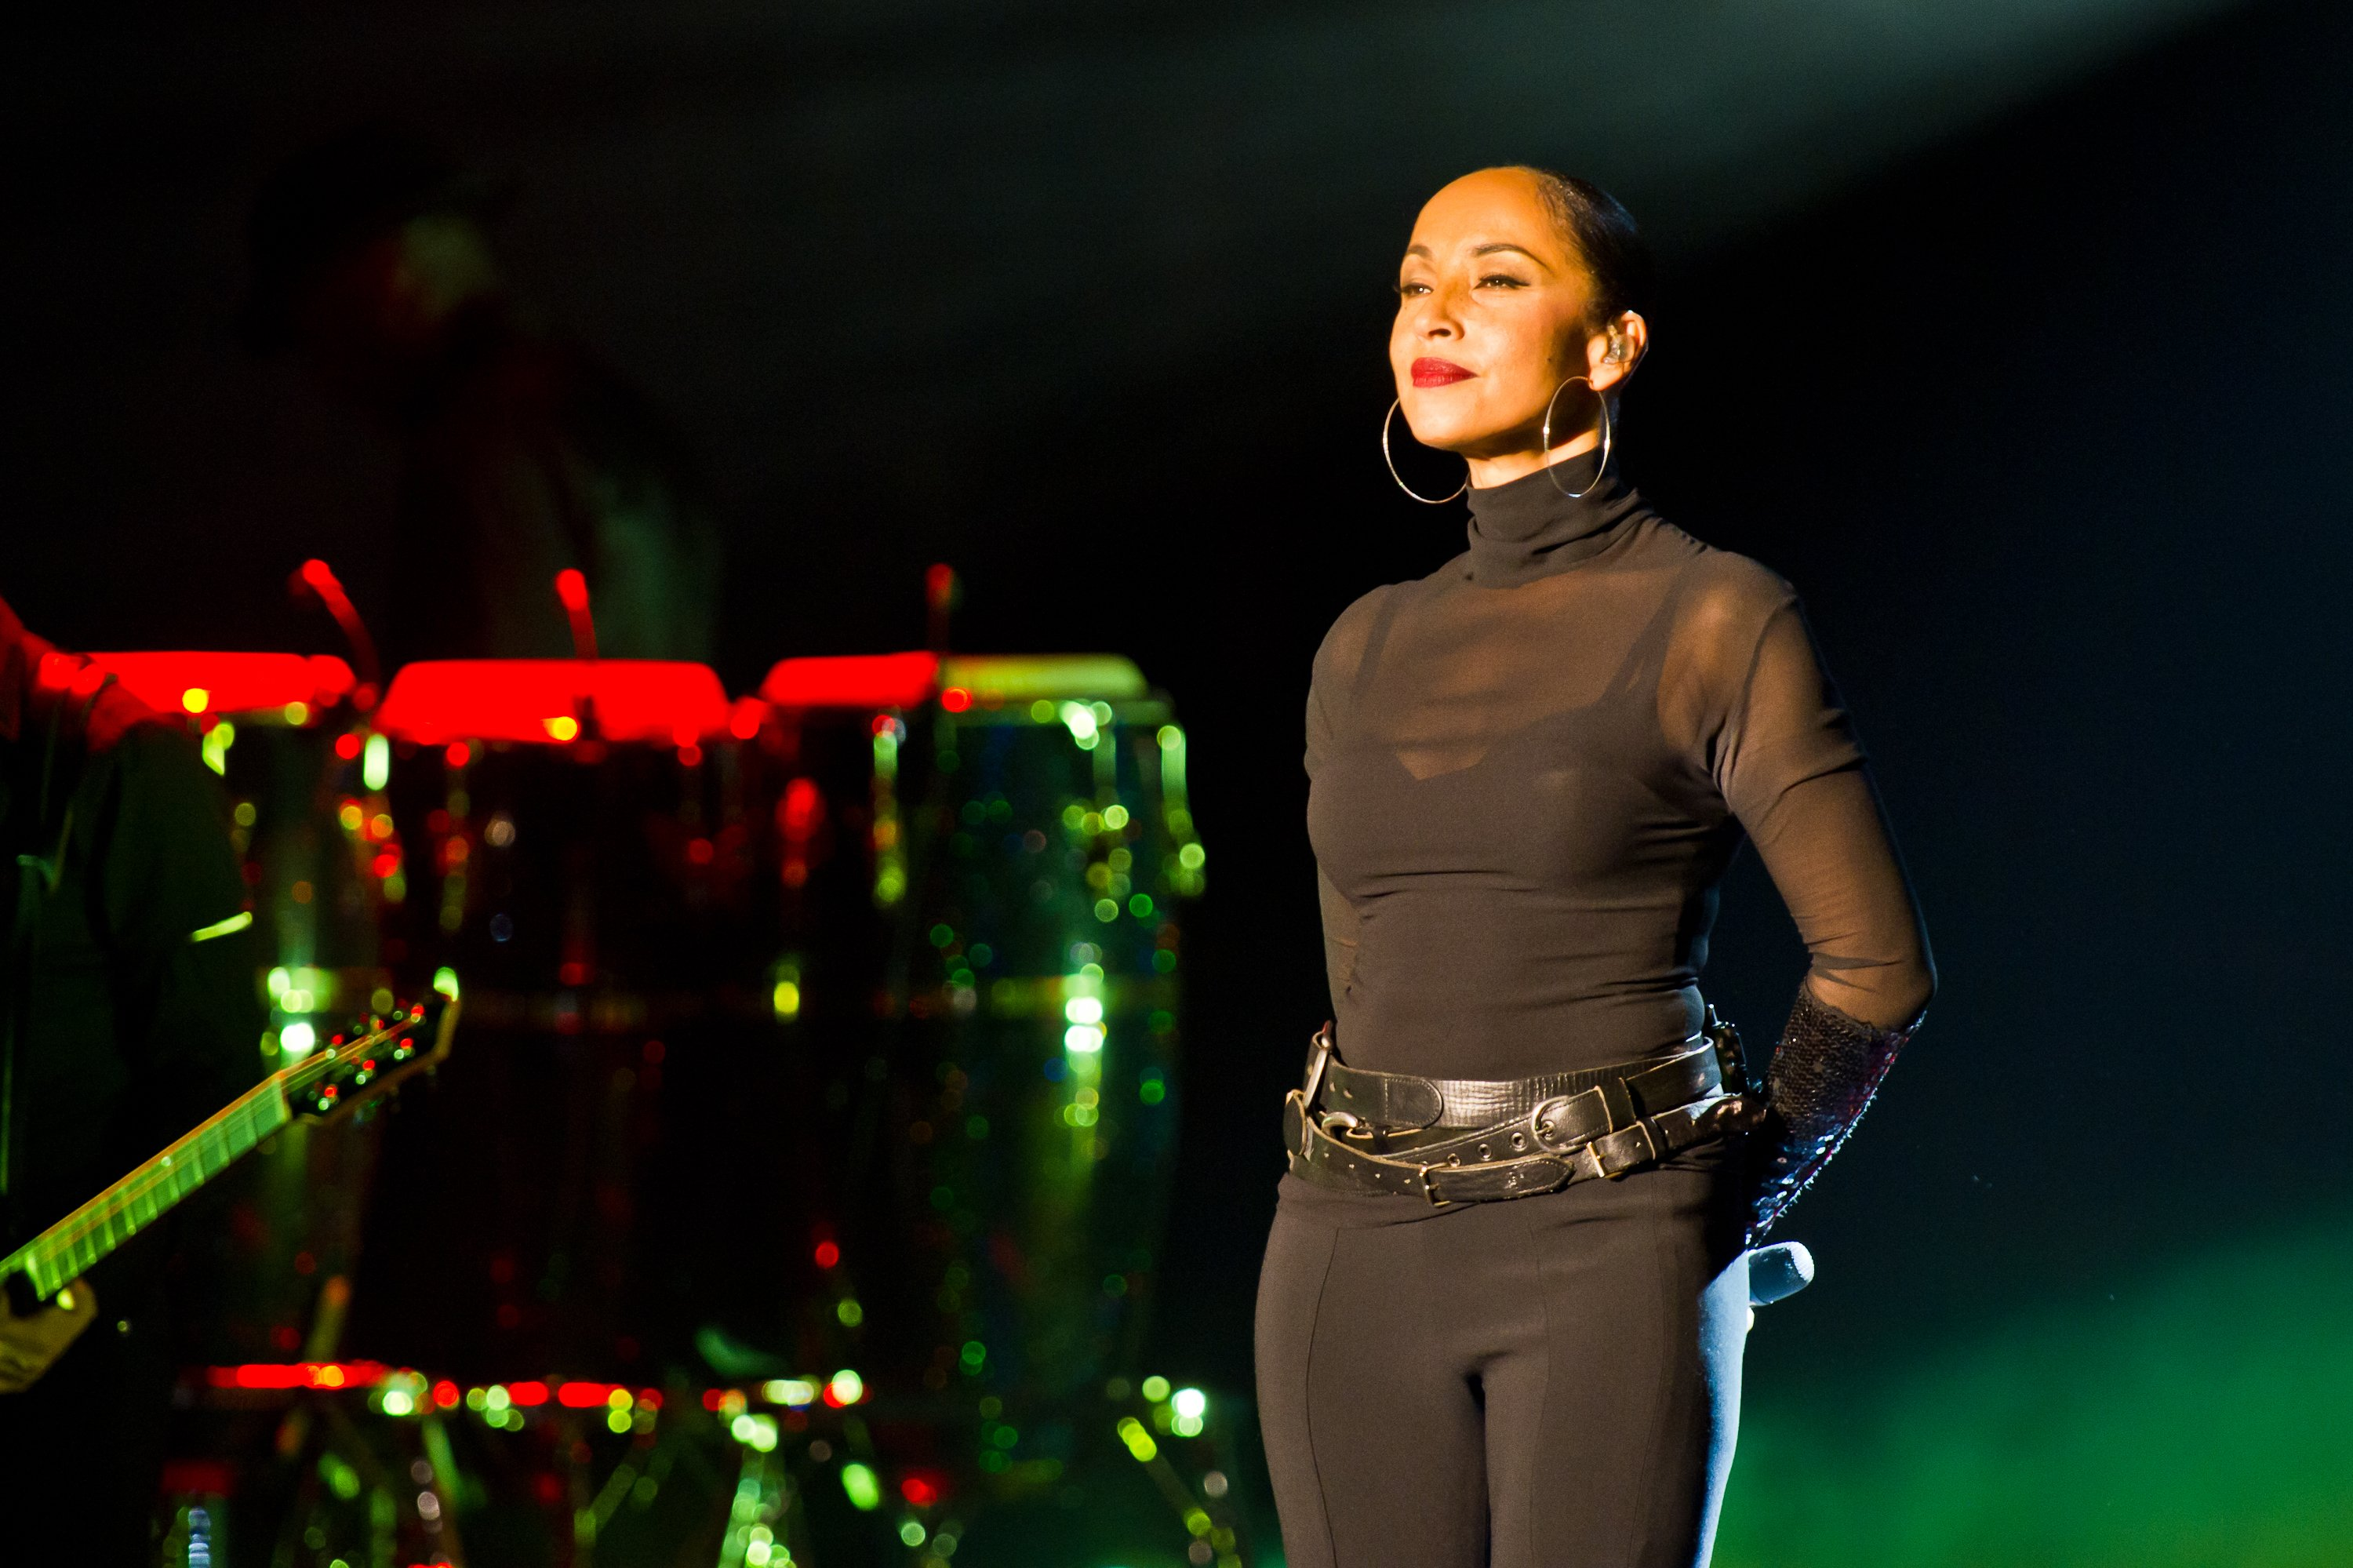 Sade performs at Palais Omnisports de Bercy on May 17, 2011 in Paris, France   Source: Getty Images